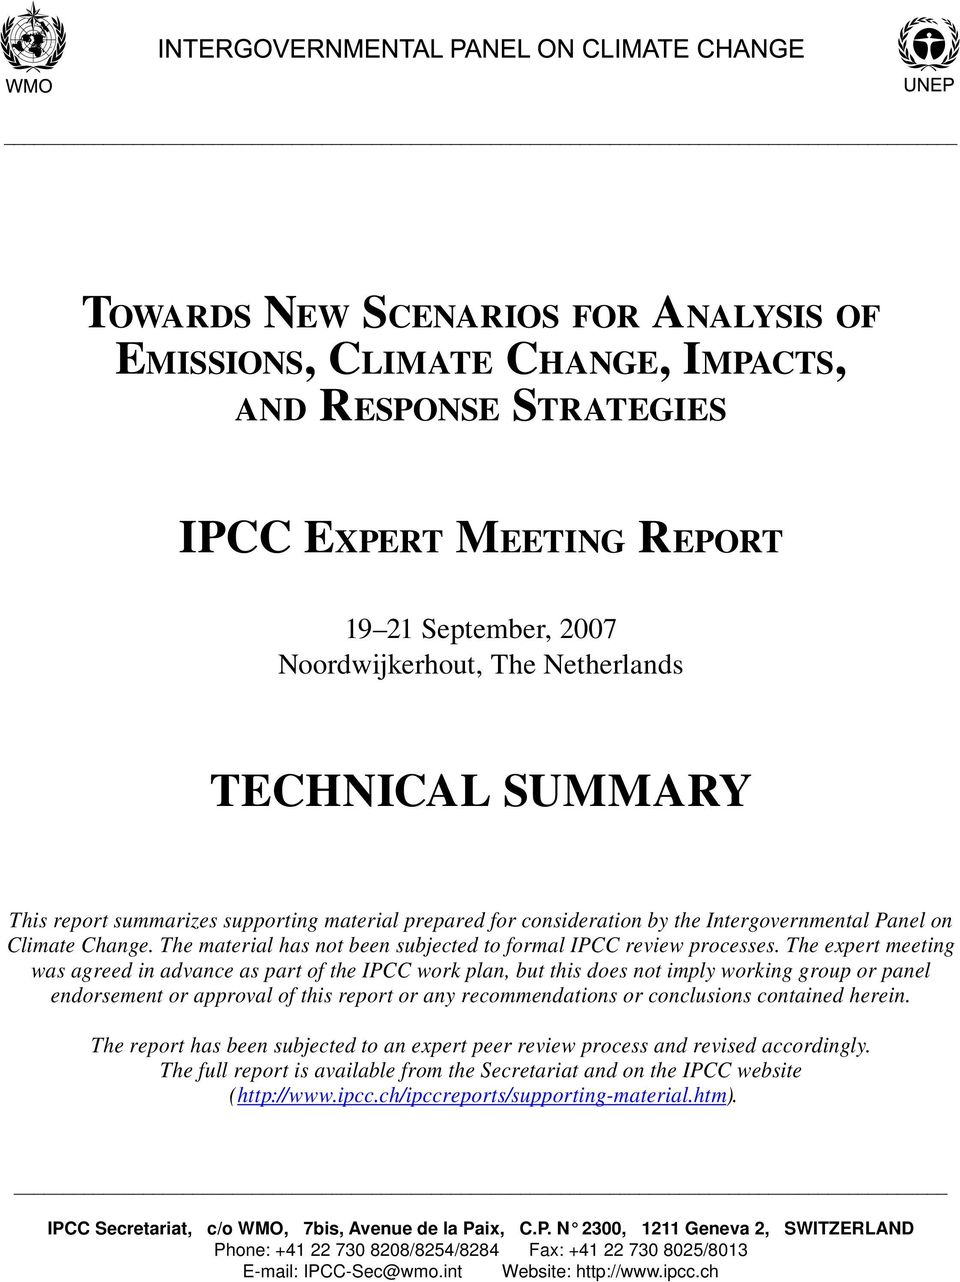 The expert meeting was agreed in advance as part of the IPCC work plan, but this does not imply working group or panel endorsement or approval of this report or any recommendations or conclusions